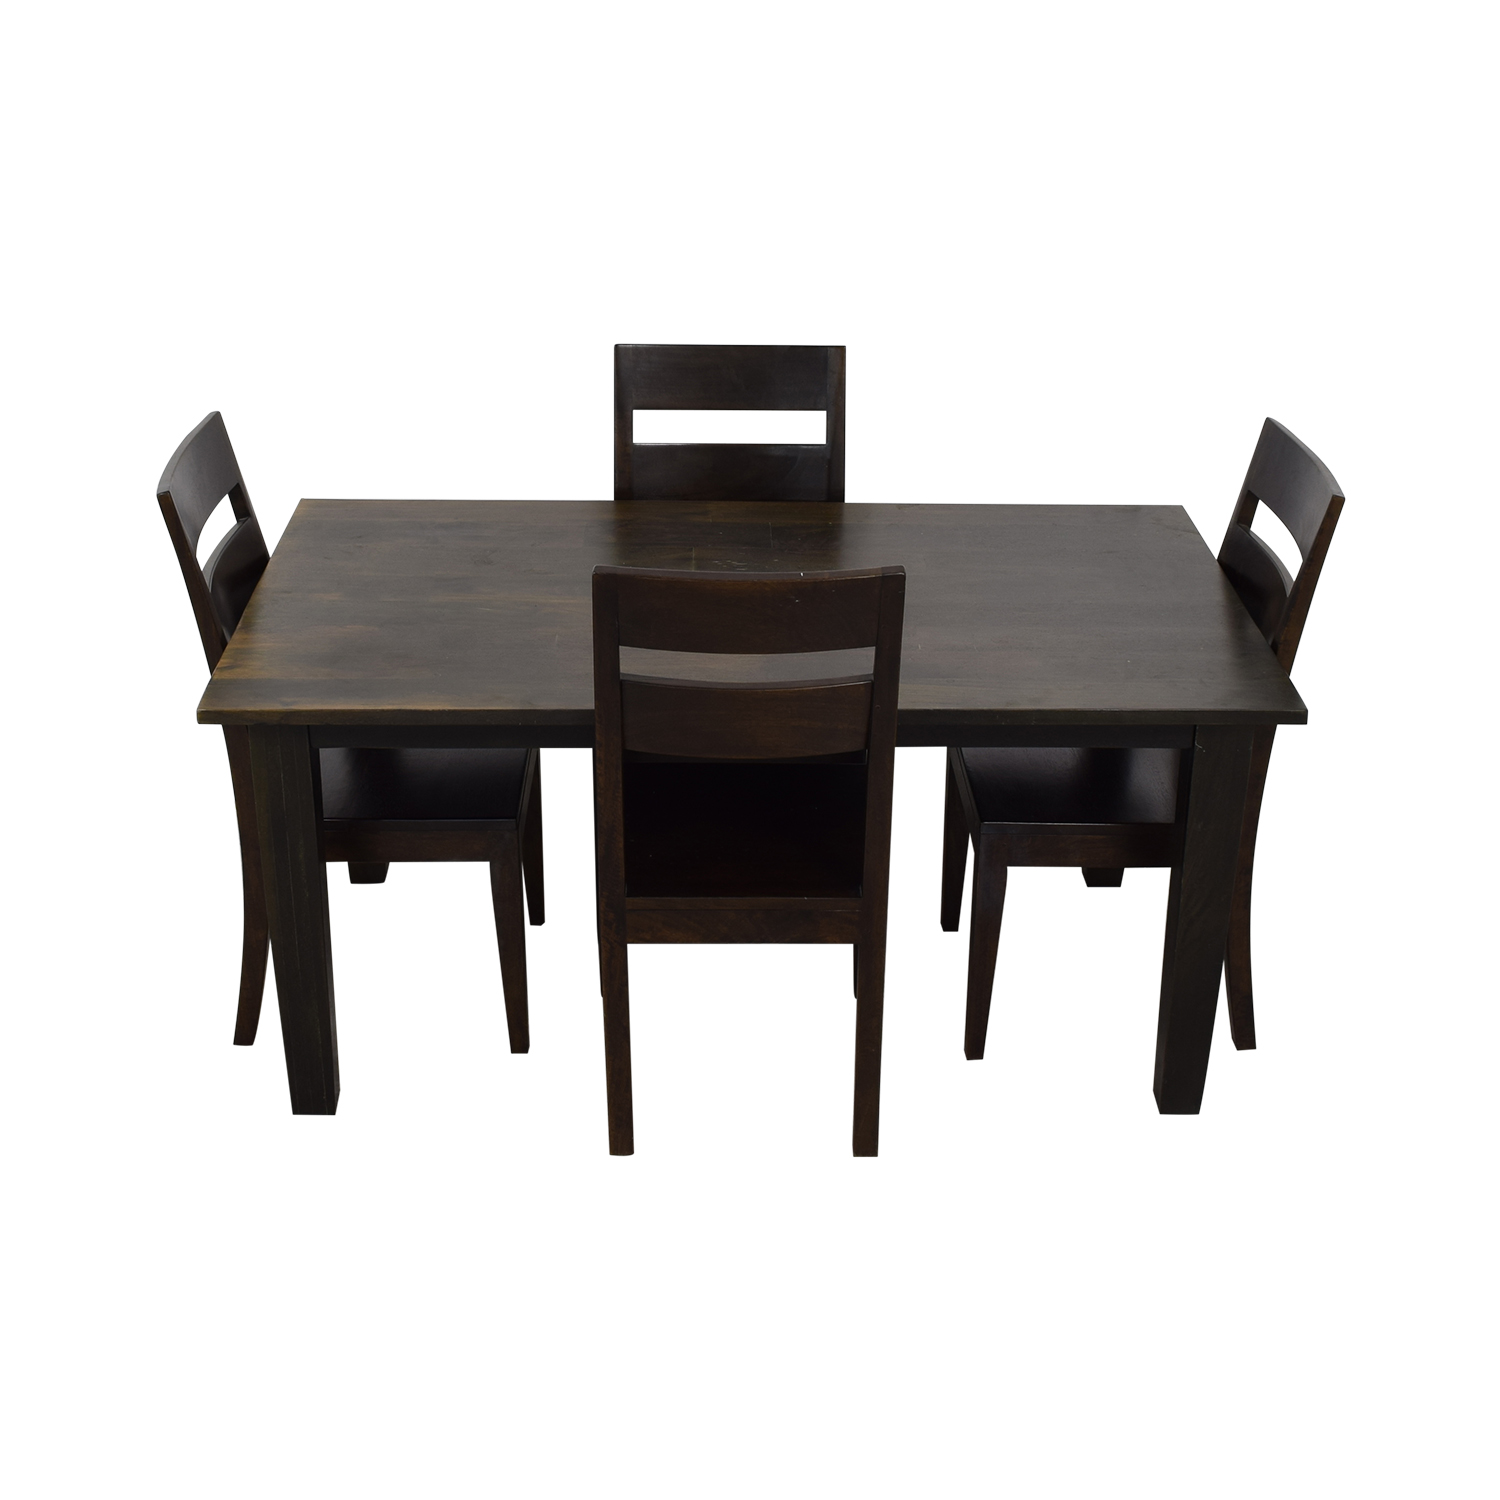 Crate & Barrel Crate & Barrel Dining Set second hand